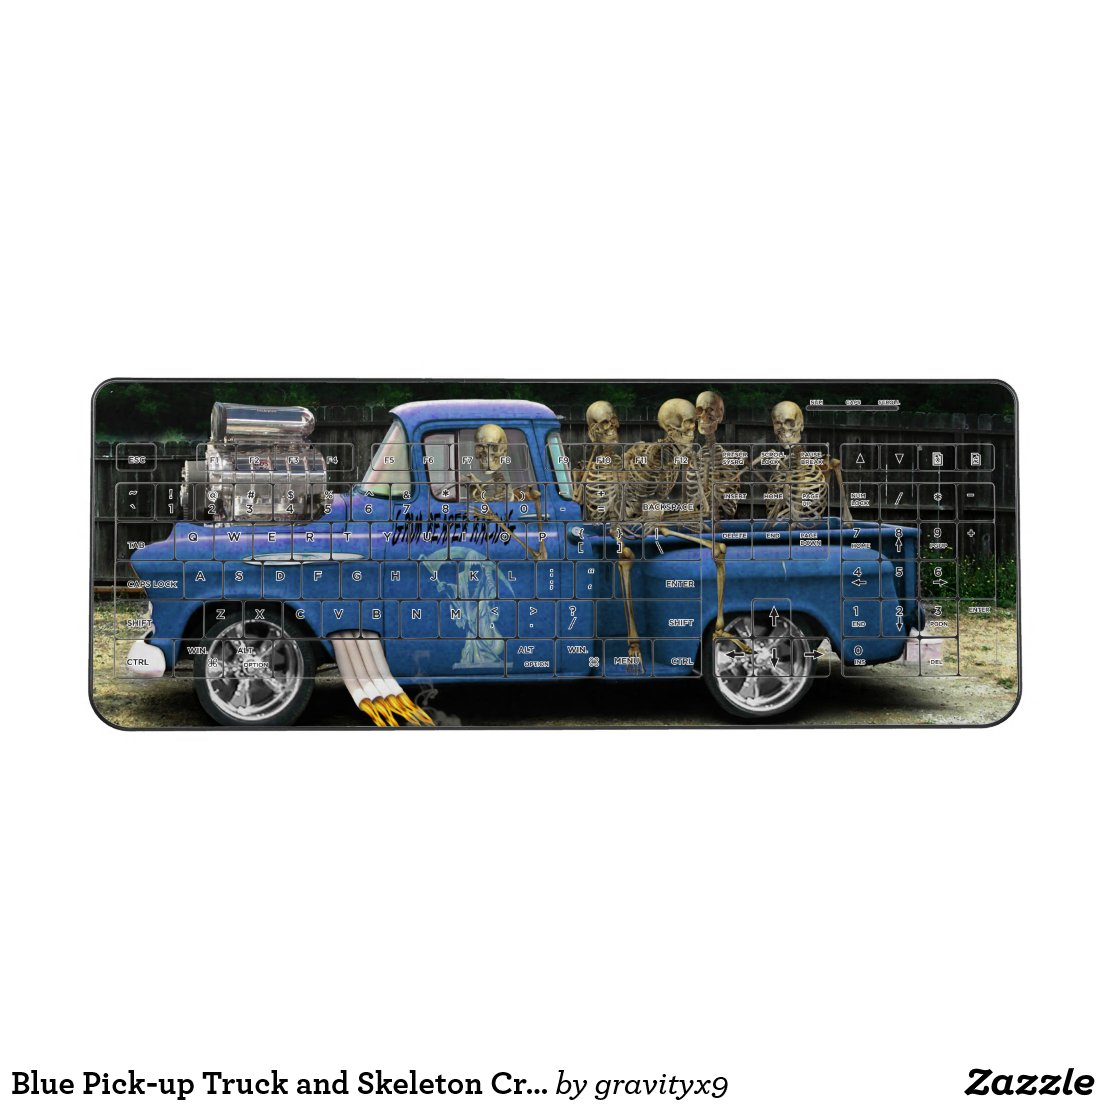 Blue Pick-up Truck with Crew Wireless Keyboard